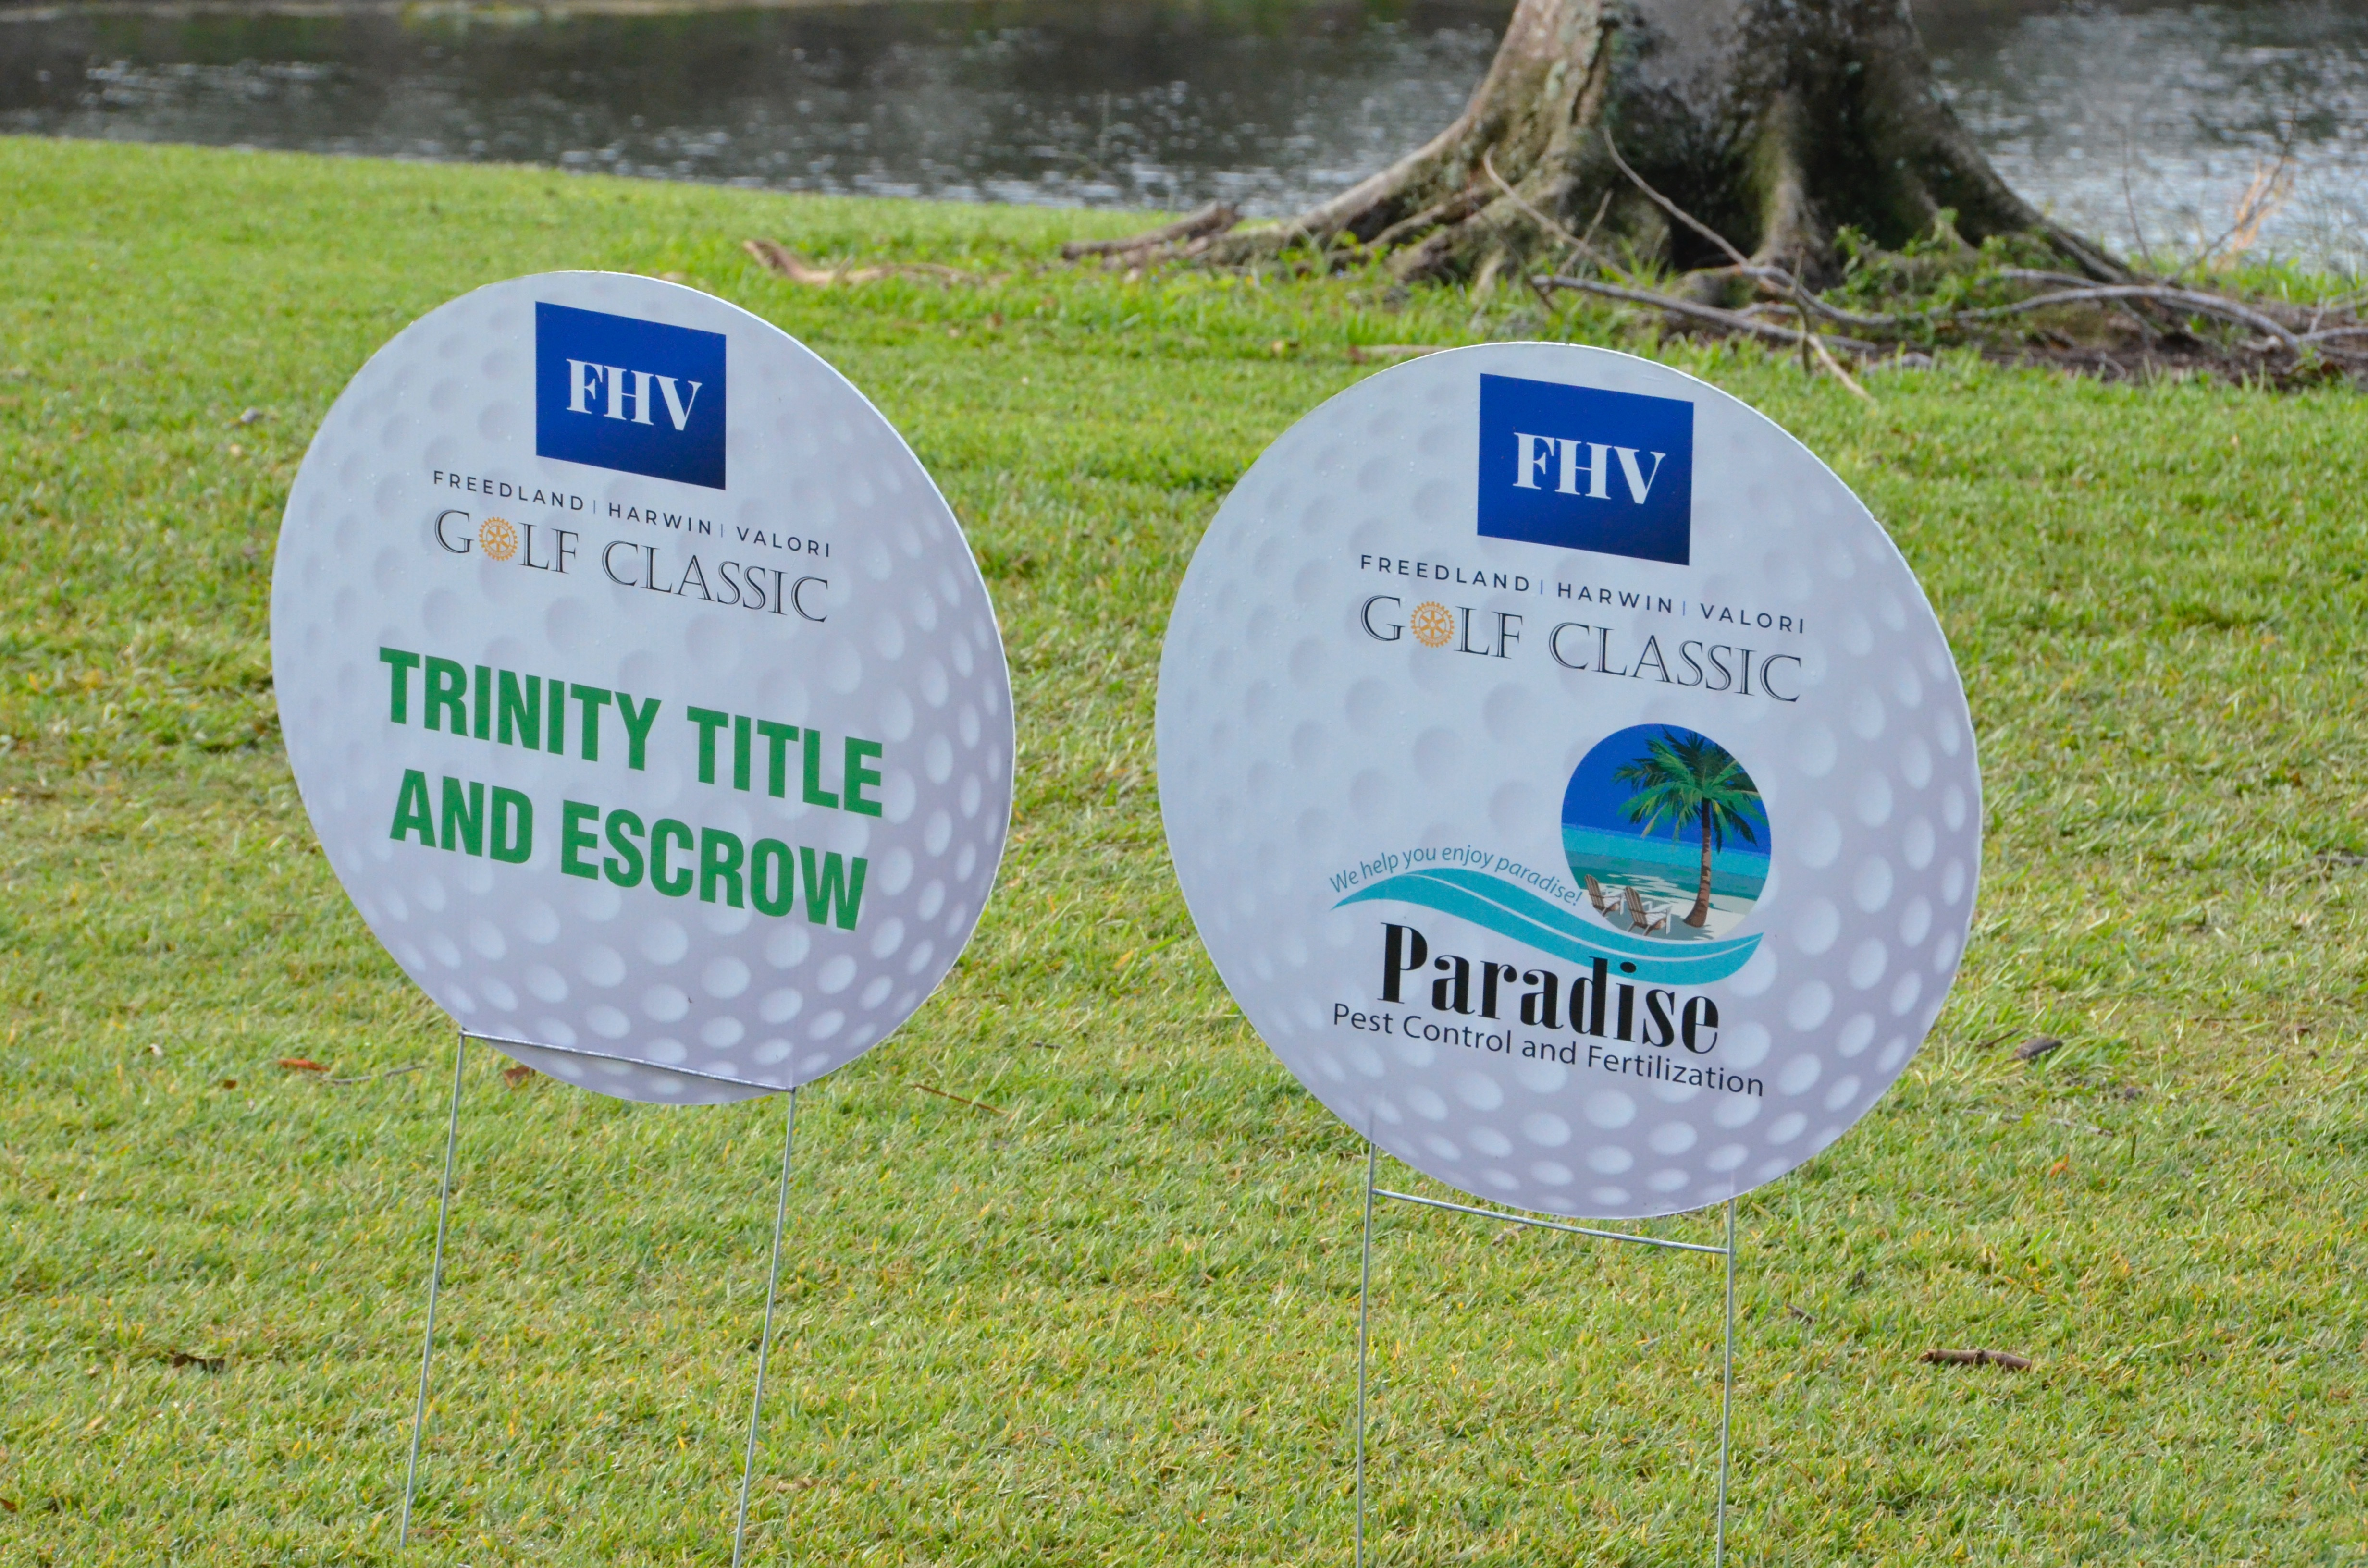 33rd Annual Rotary Golf Classic Sponsored by FHVLEGAL.COM gallery image #80